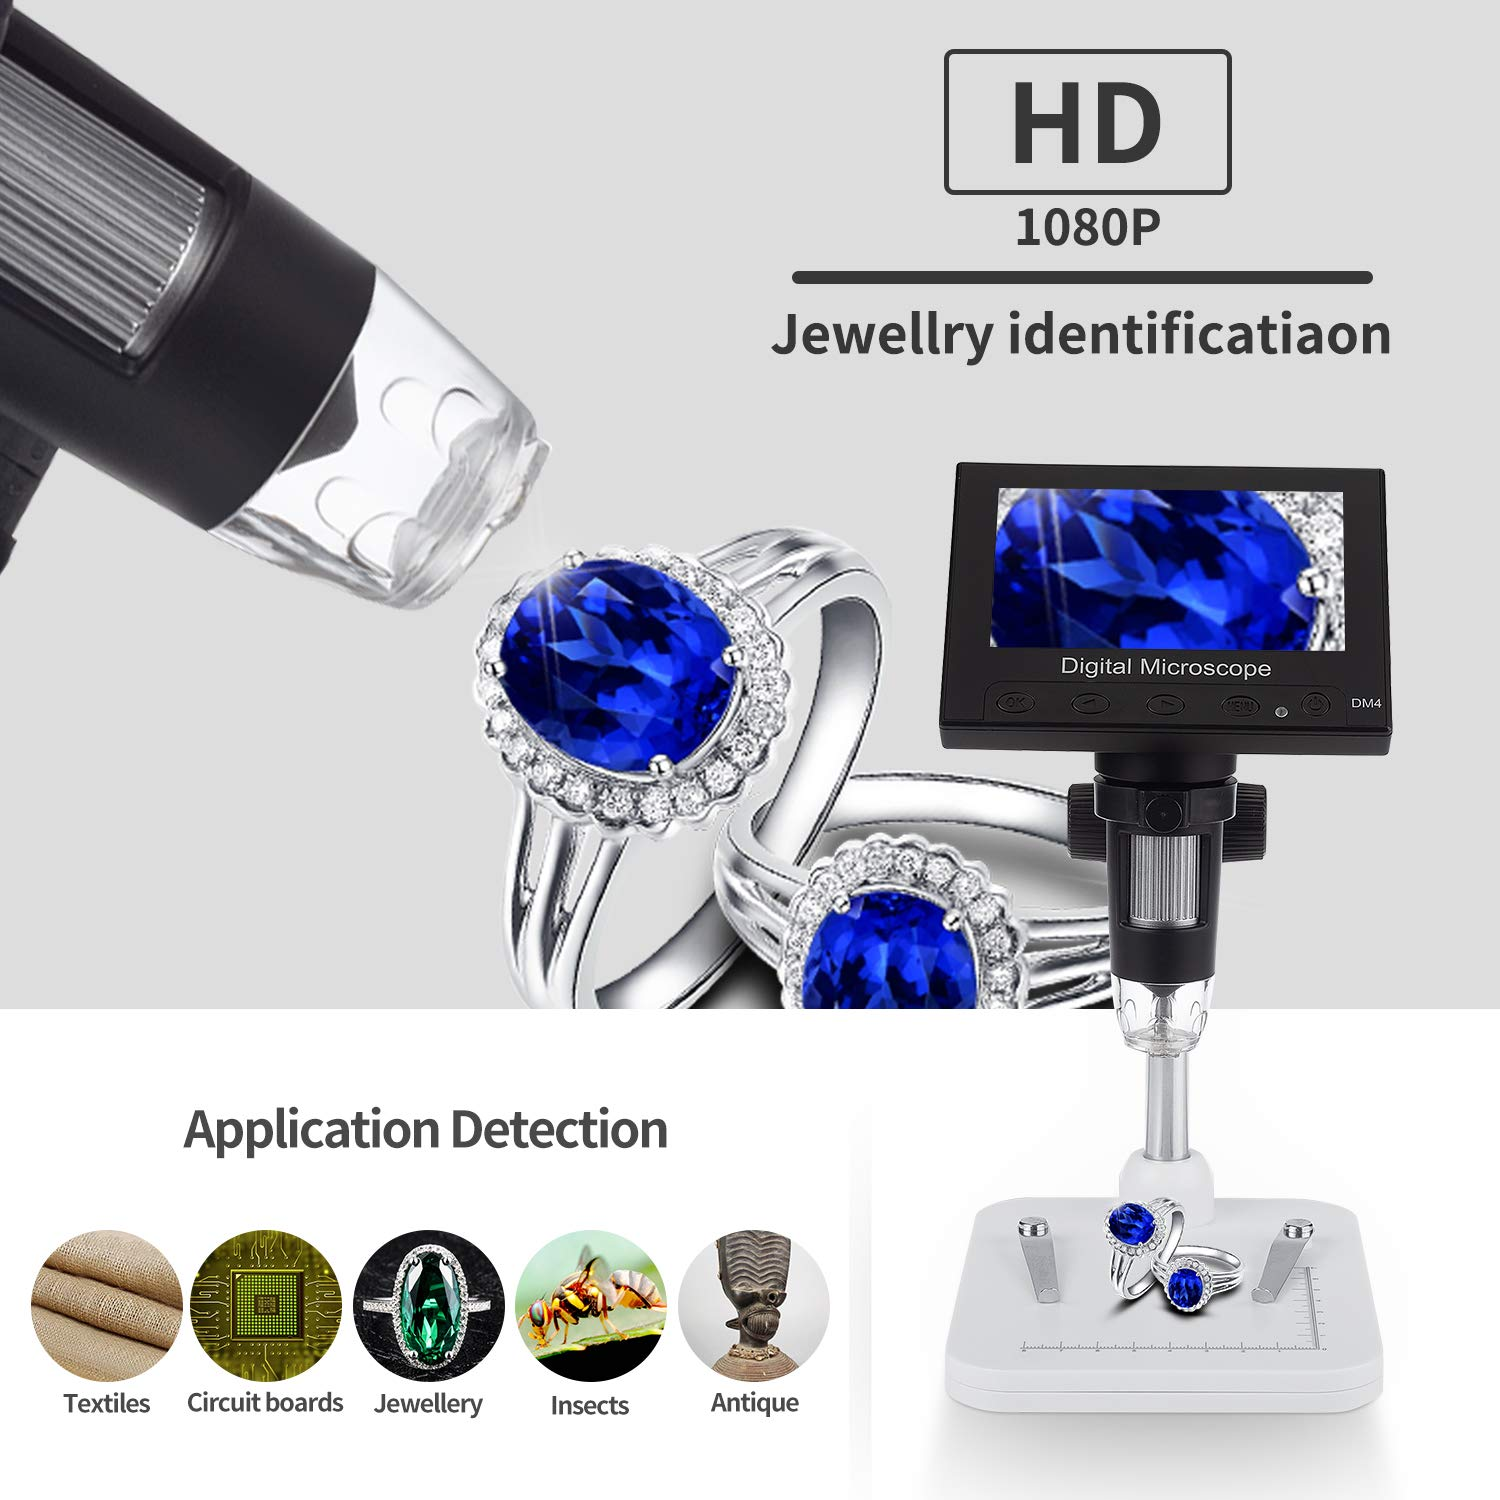 Portable LCD Digital Microscope, HongDiXiang 4.3 inch 1000X Magnification Zoom HD 1080P, Adjustable LED Light Camera Video Recorder for Insectobservation Jewelry Identification and Circuit Maintenan